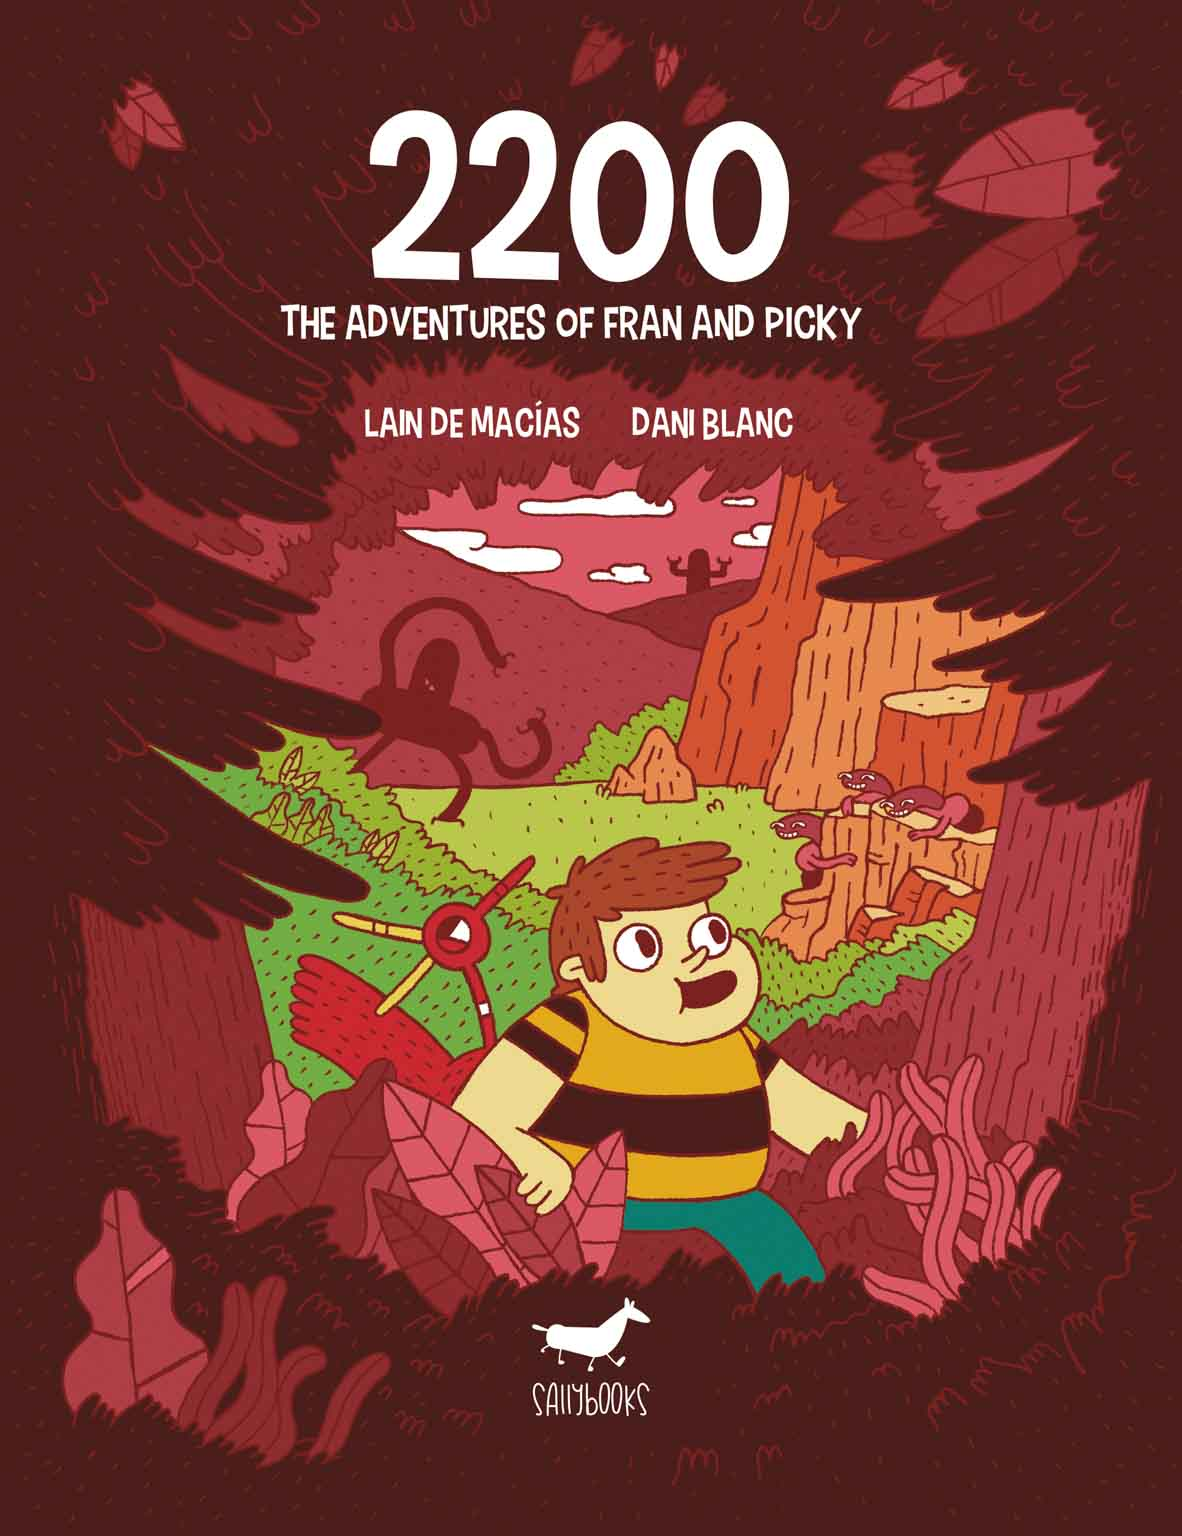 2200. THE ADVENTURES OF FRAN AND PICKY